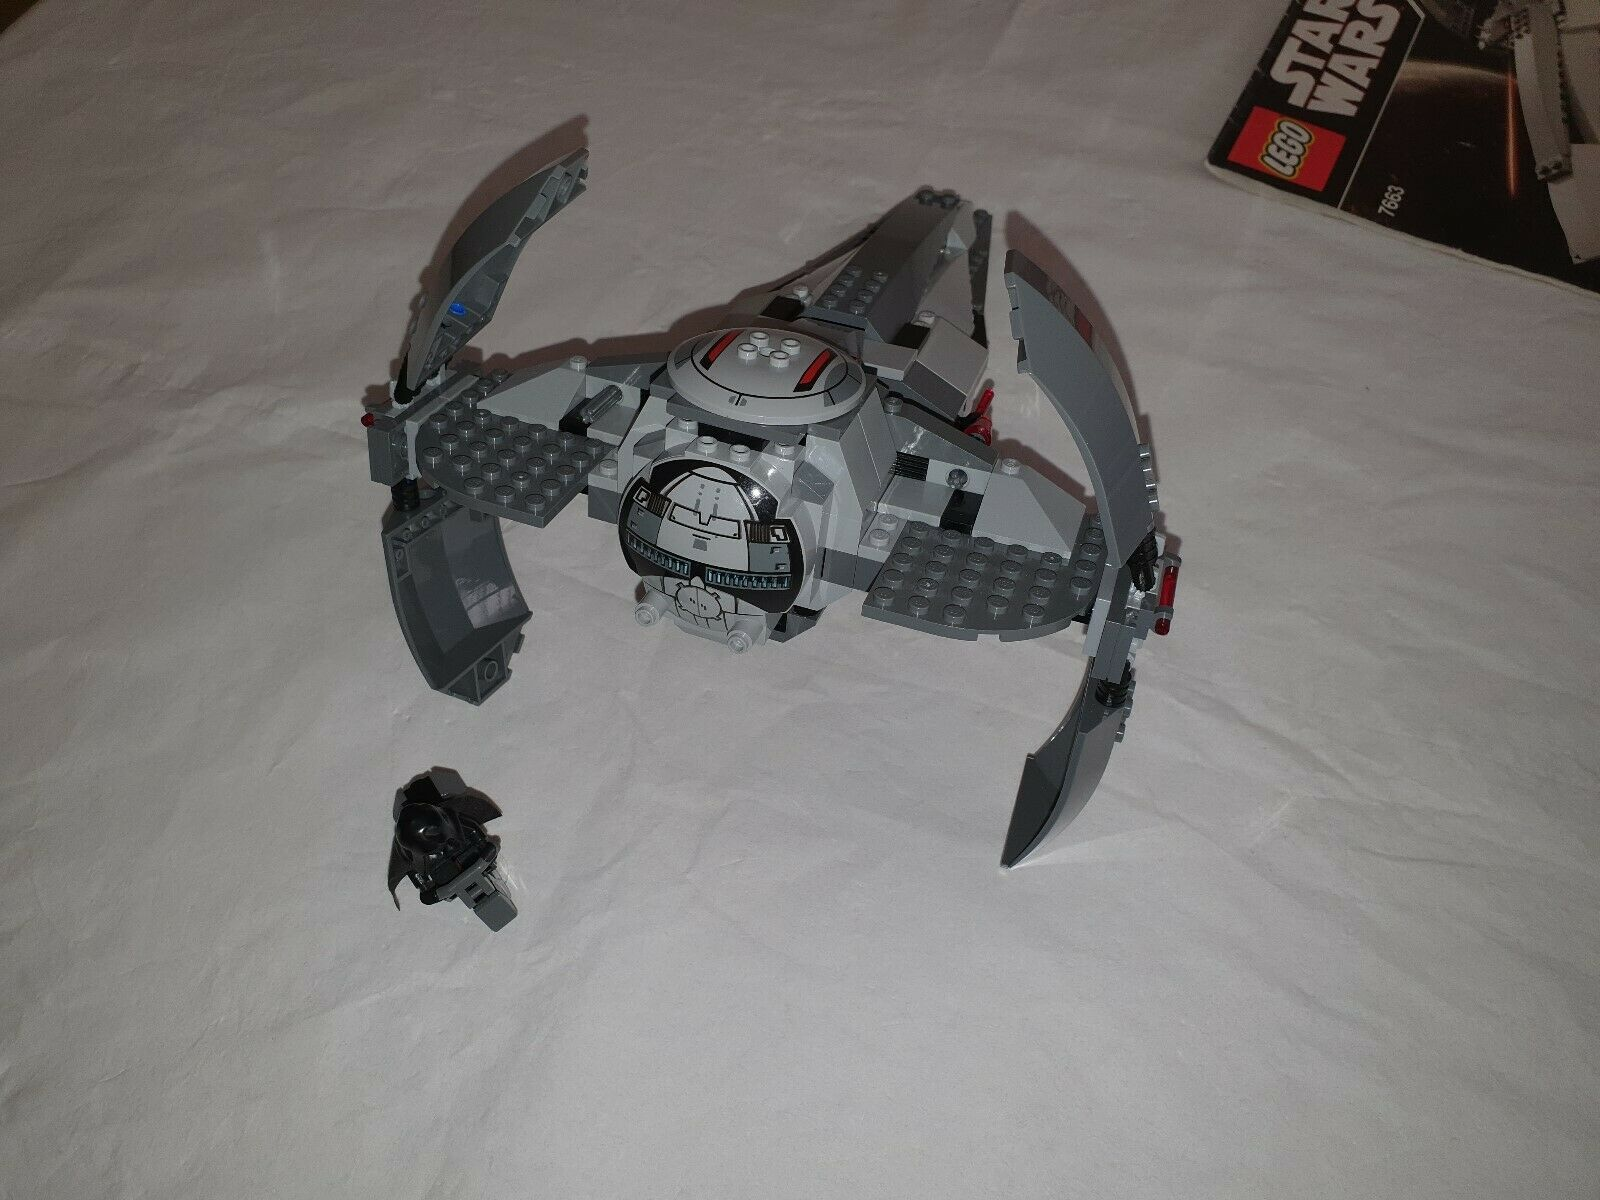 Lego Star Wars 7663 Sith Inflitrator - Used - 100% Complete -Very Good Condition